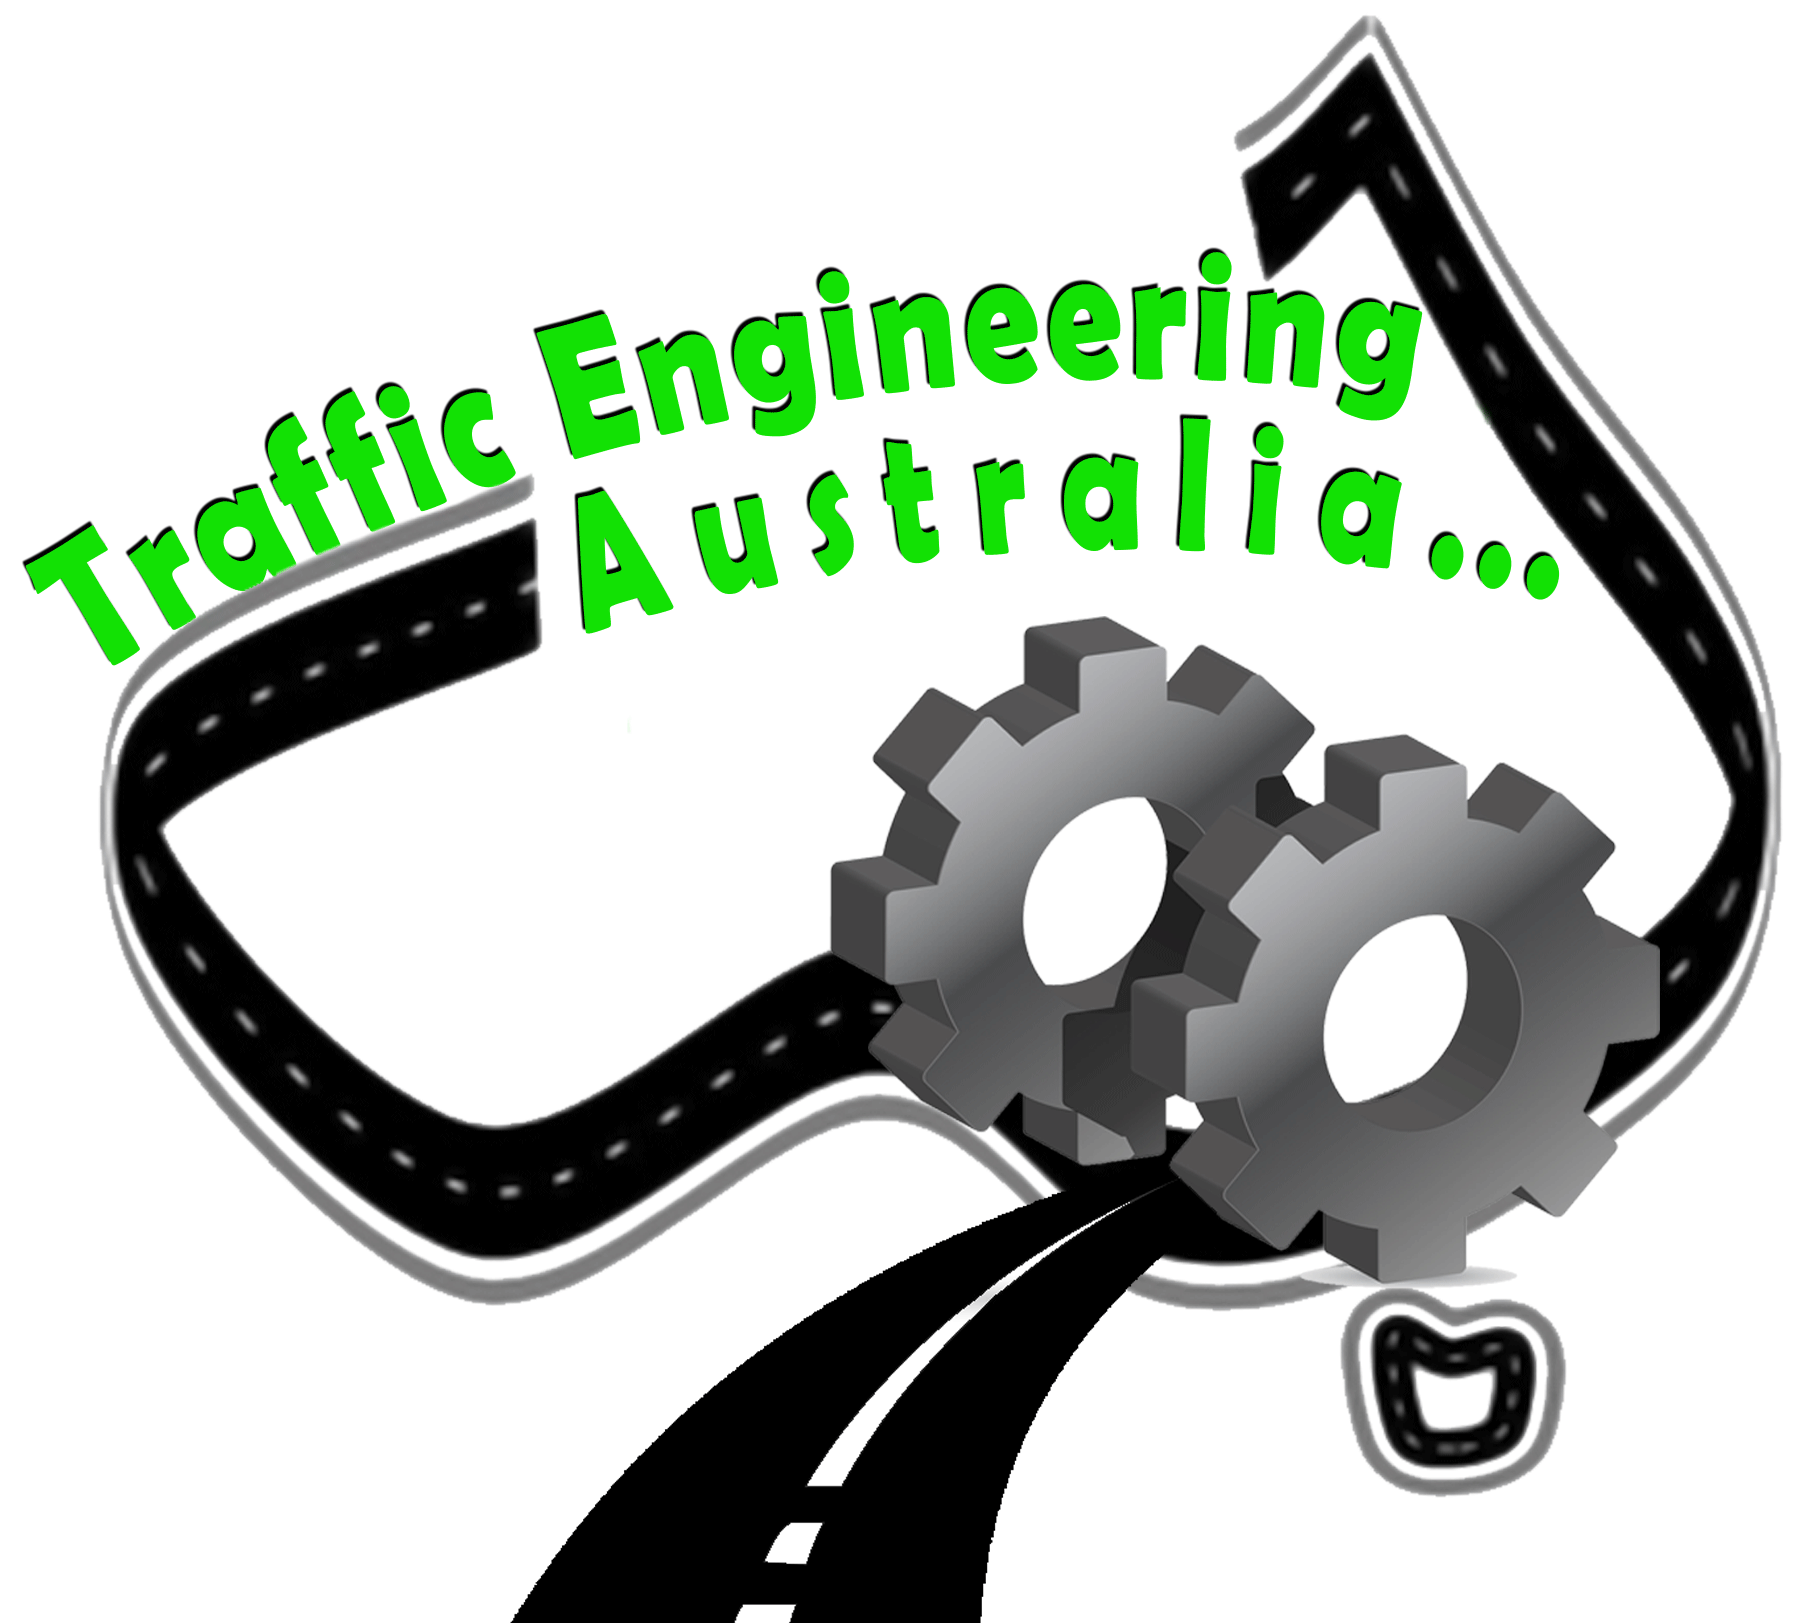 Traffic Engineering Australia